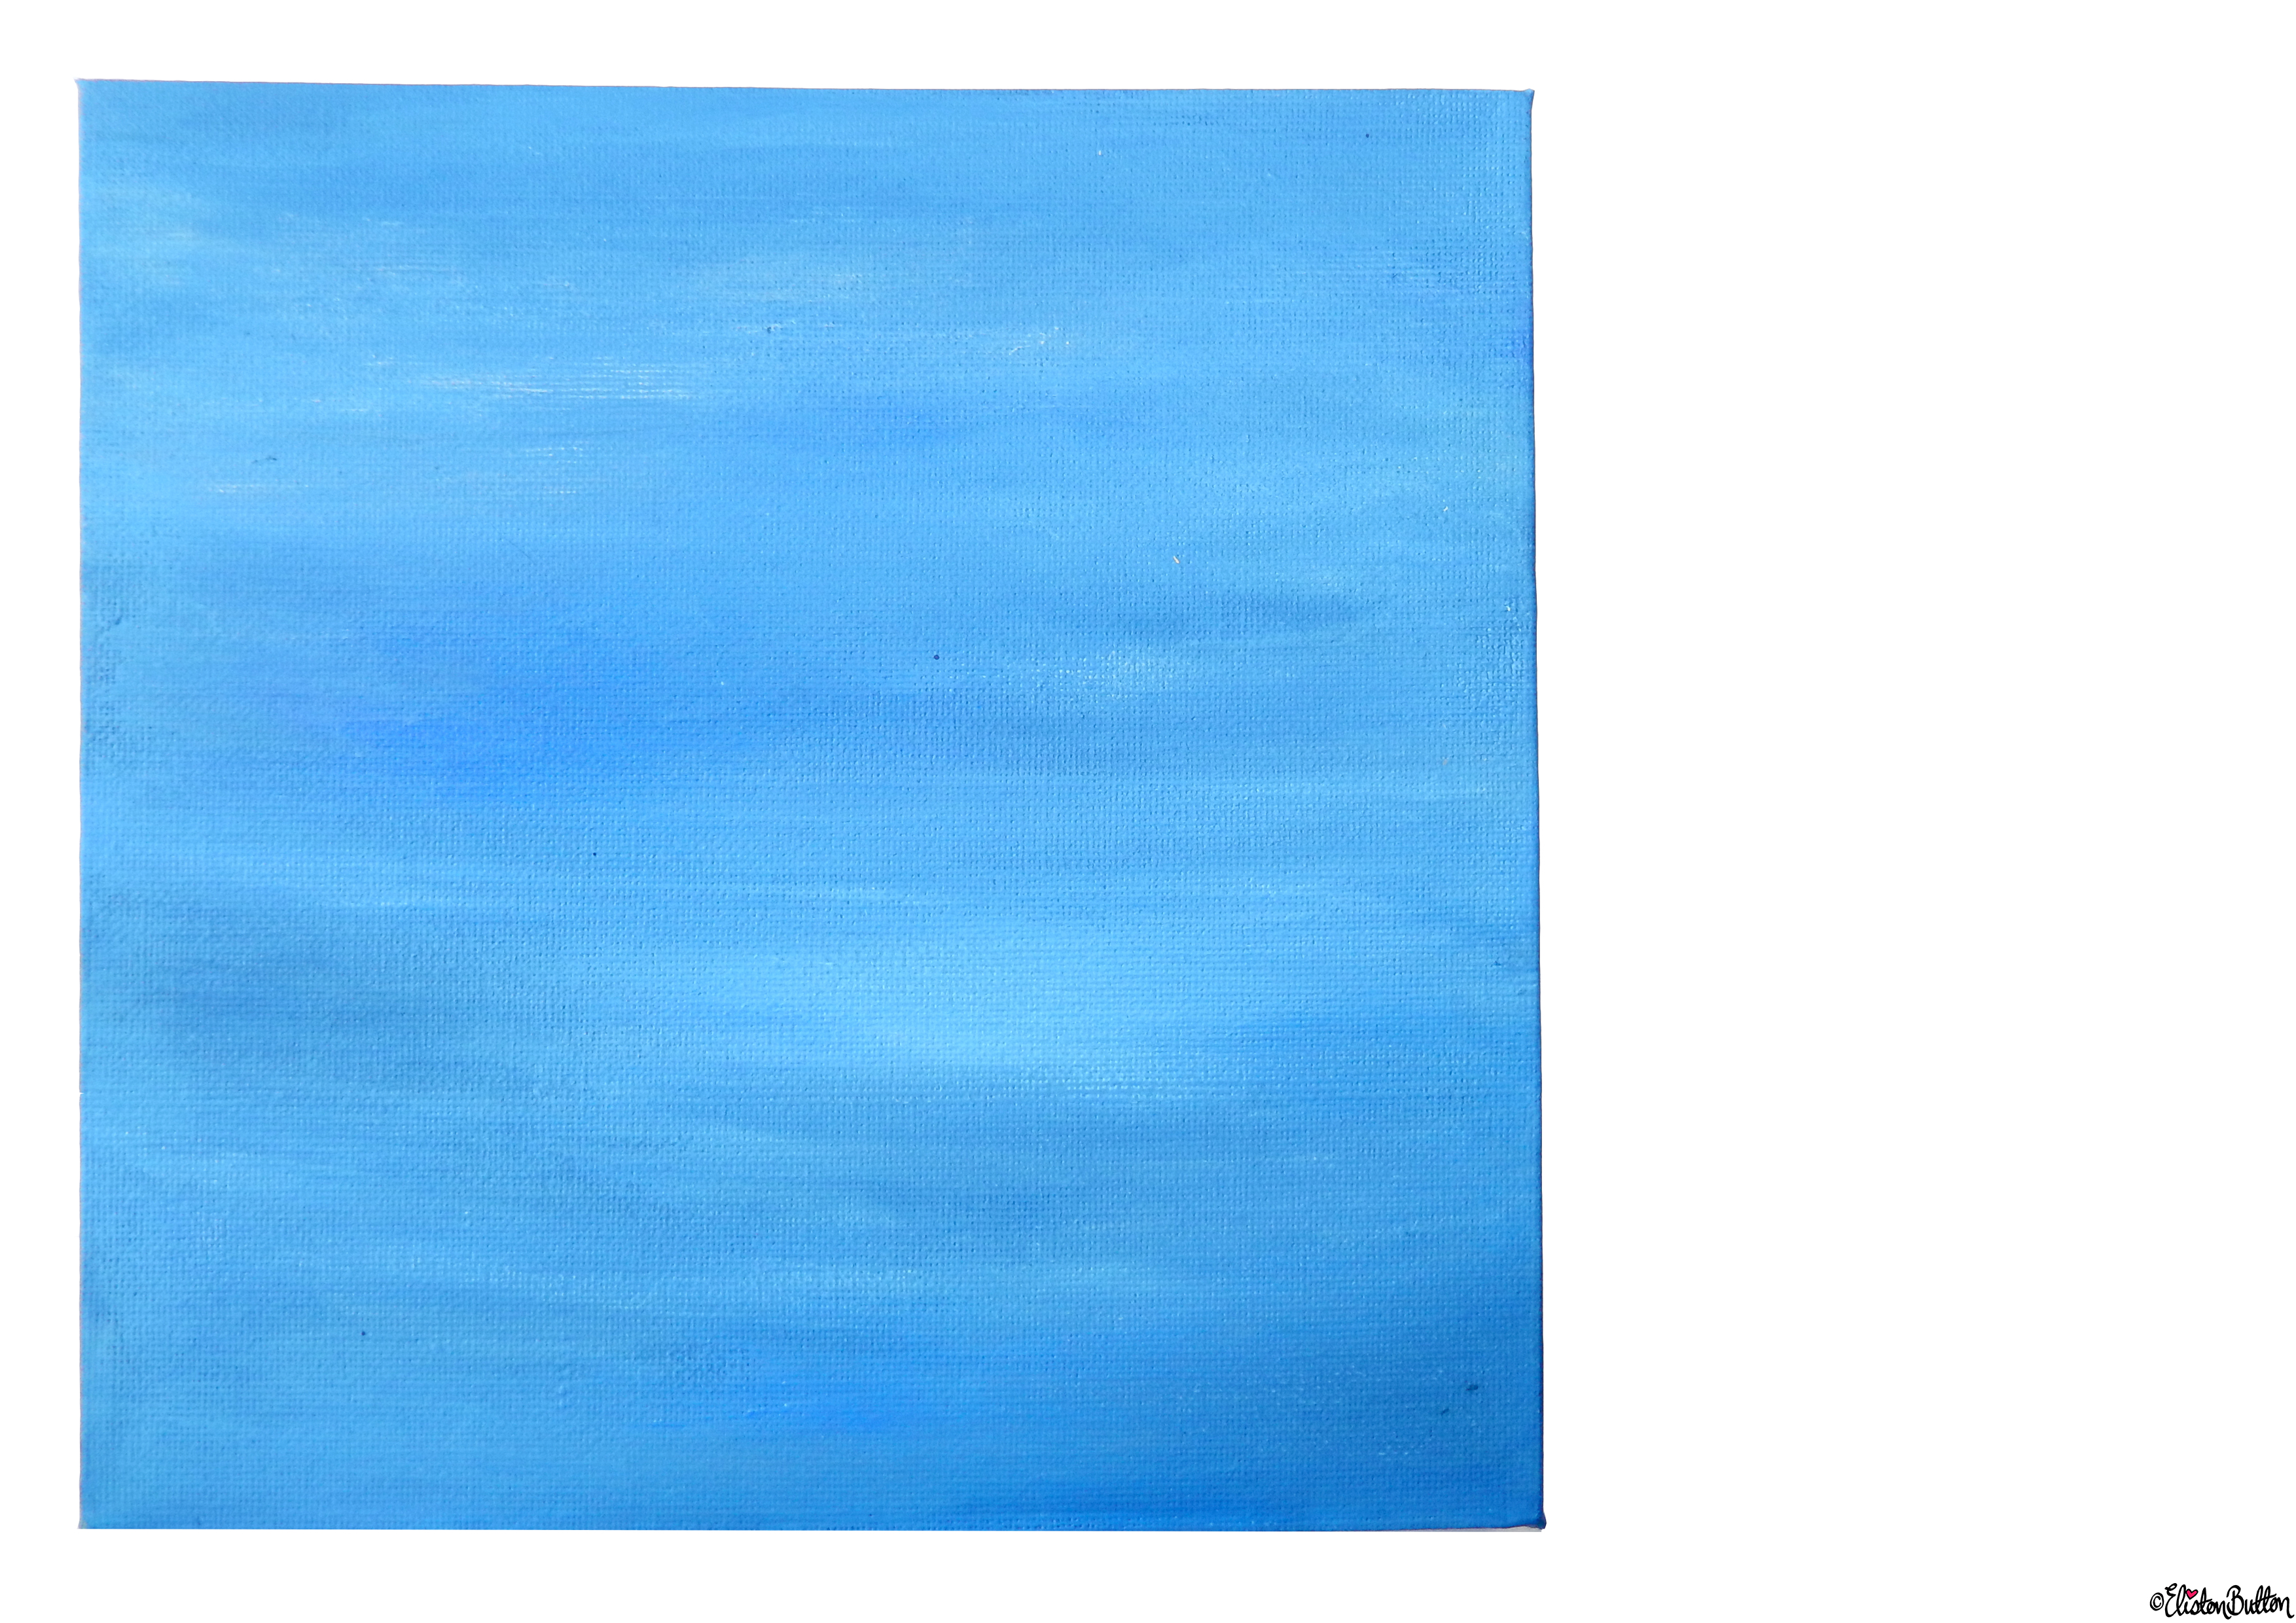 Summer Skies Blue Painted Canvas  - Front View - Create 28 - No. 16, 17 & 18 - Sea and Sky Painted Canvases at www.elistonbutton.com - Eliston Button - That Crafty Kid – Art, Design, Craft & Adventure.